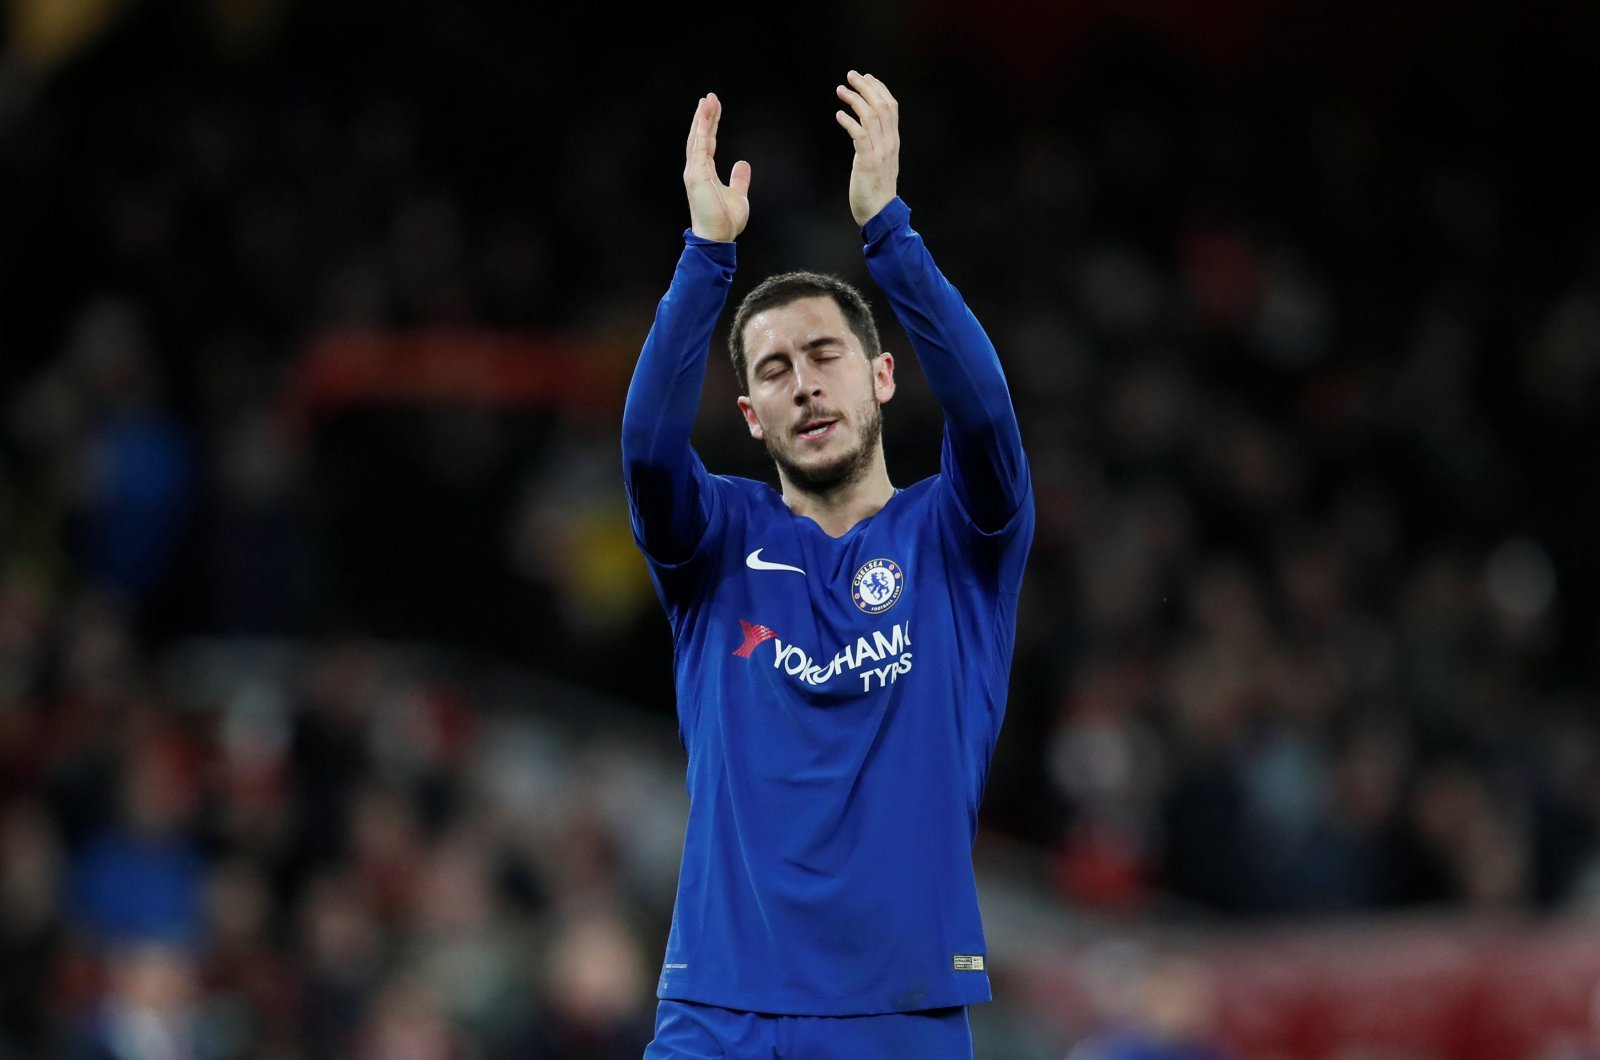 Chelsea fans are convinced that Hazard will sign a new deal